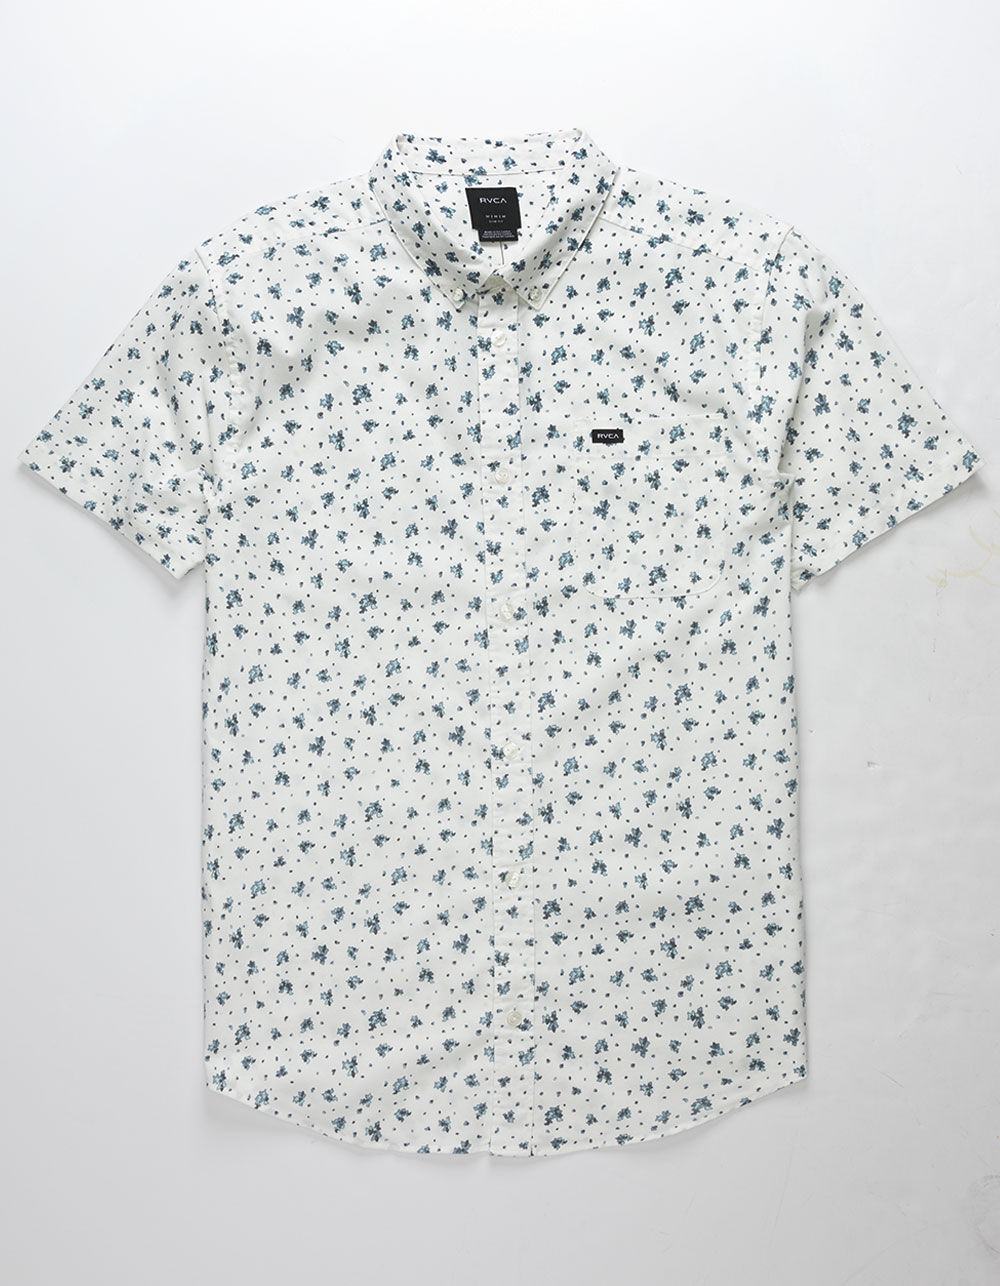 RVCA That'll Do Print Antique White Shirt